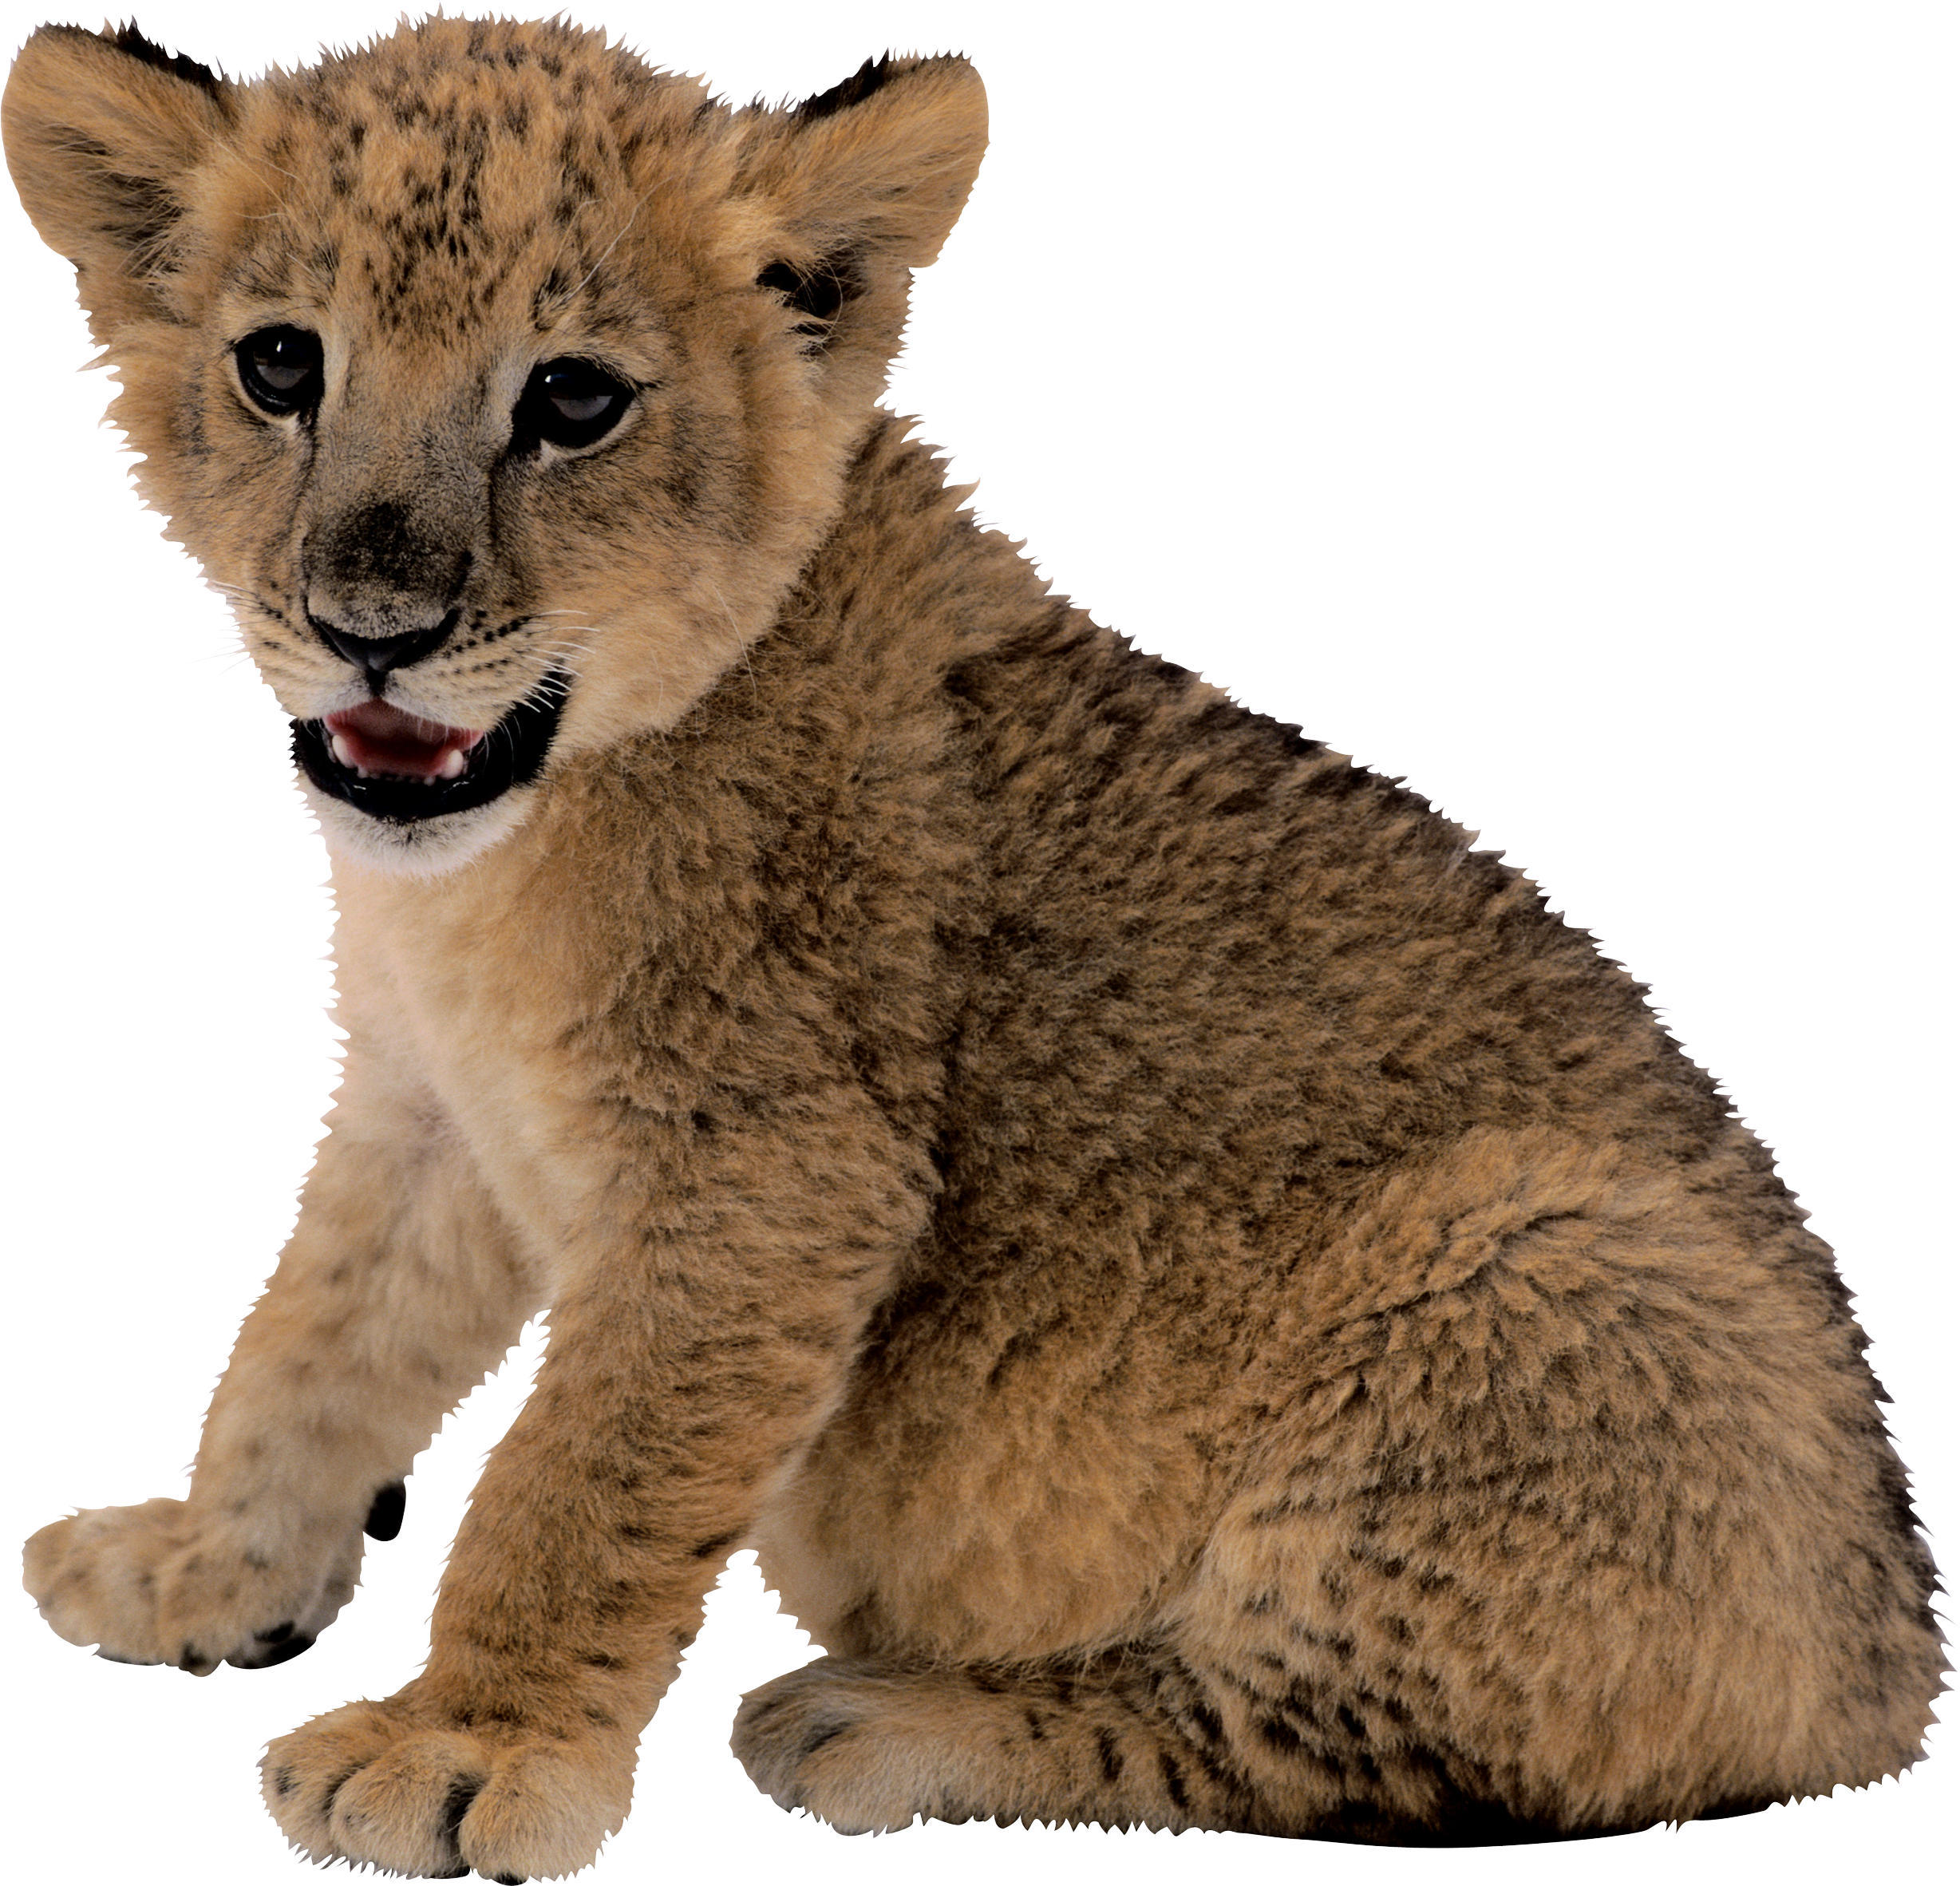 small lion PNG image - Big Cat PNG